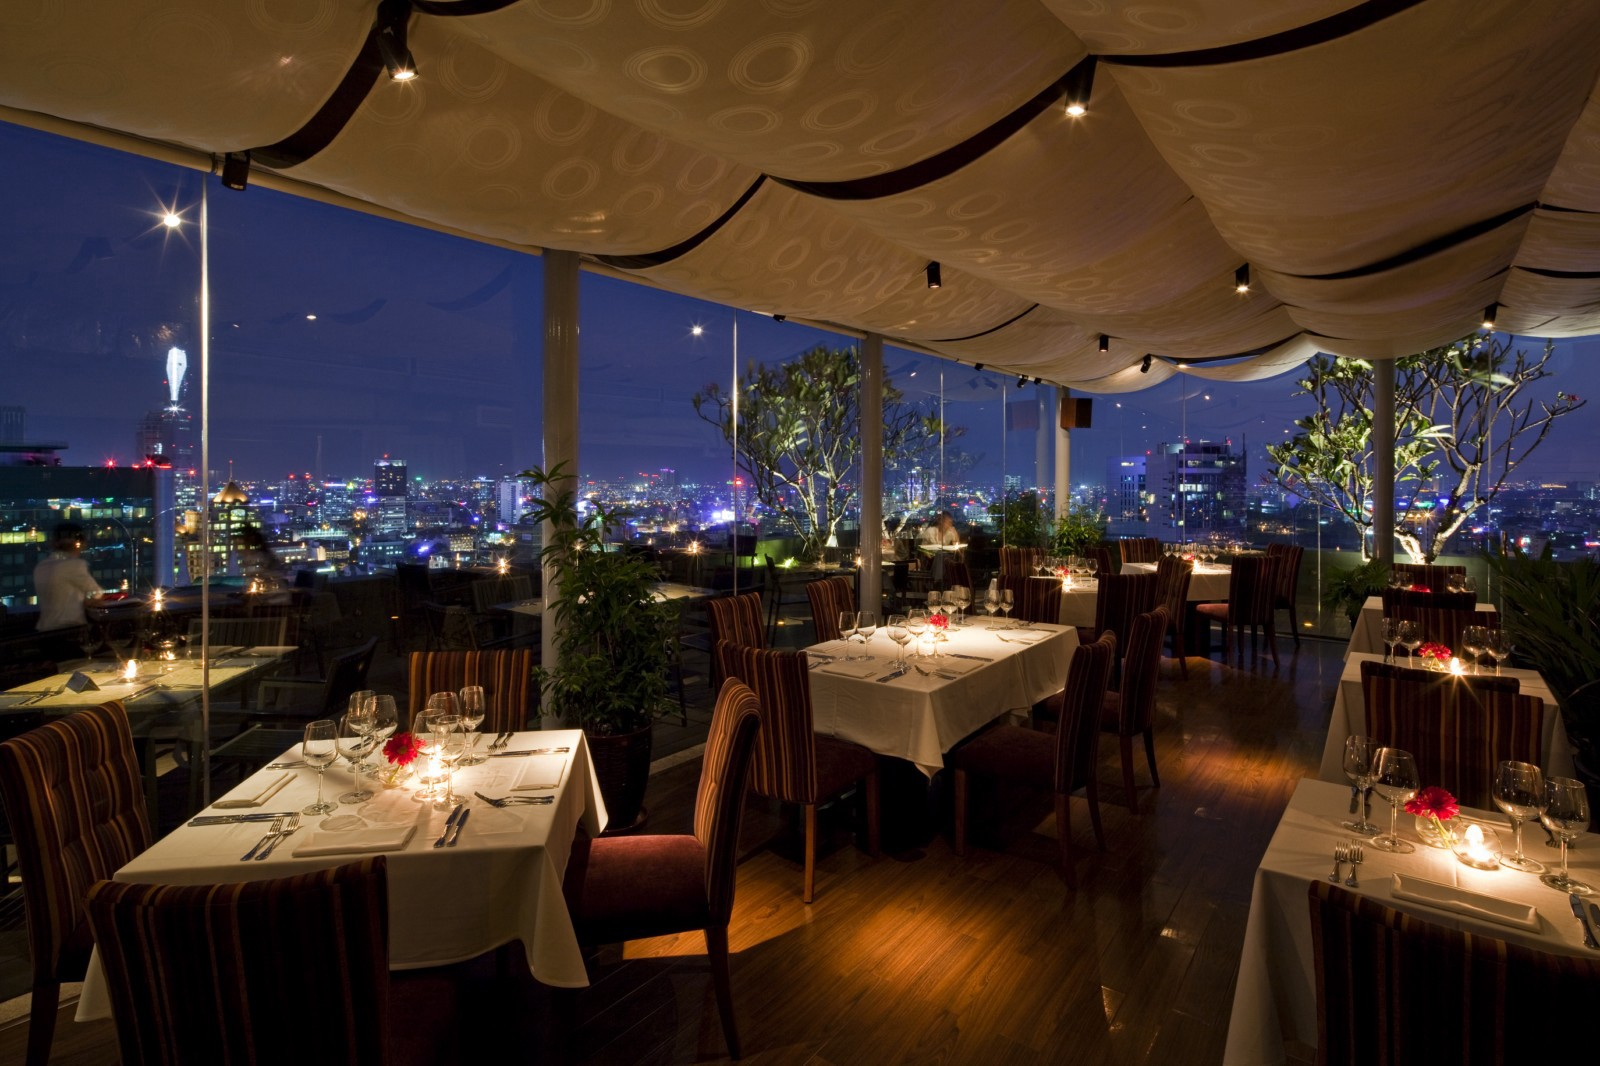 Top 10 famous restaurants in Ho Chi Minh City - Travel